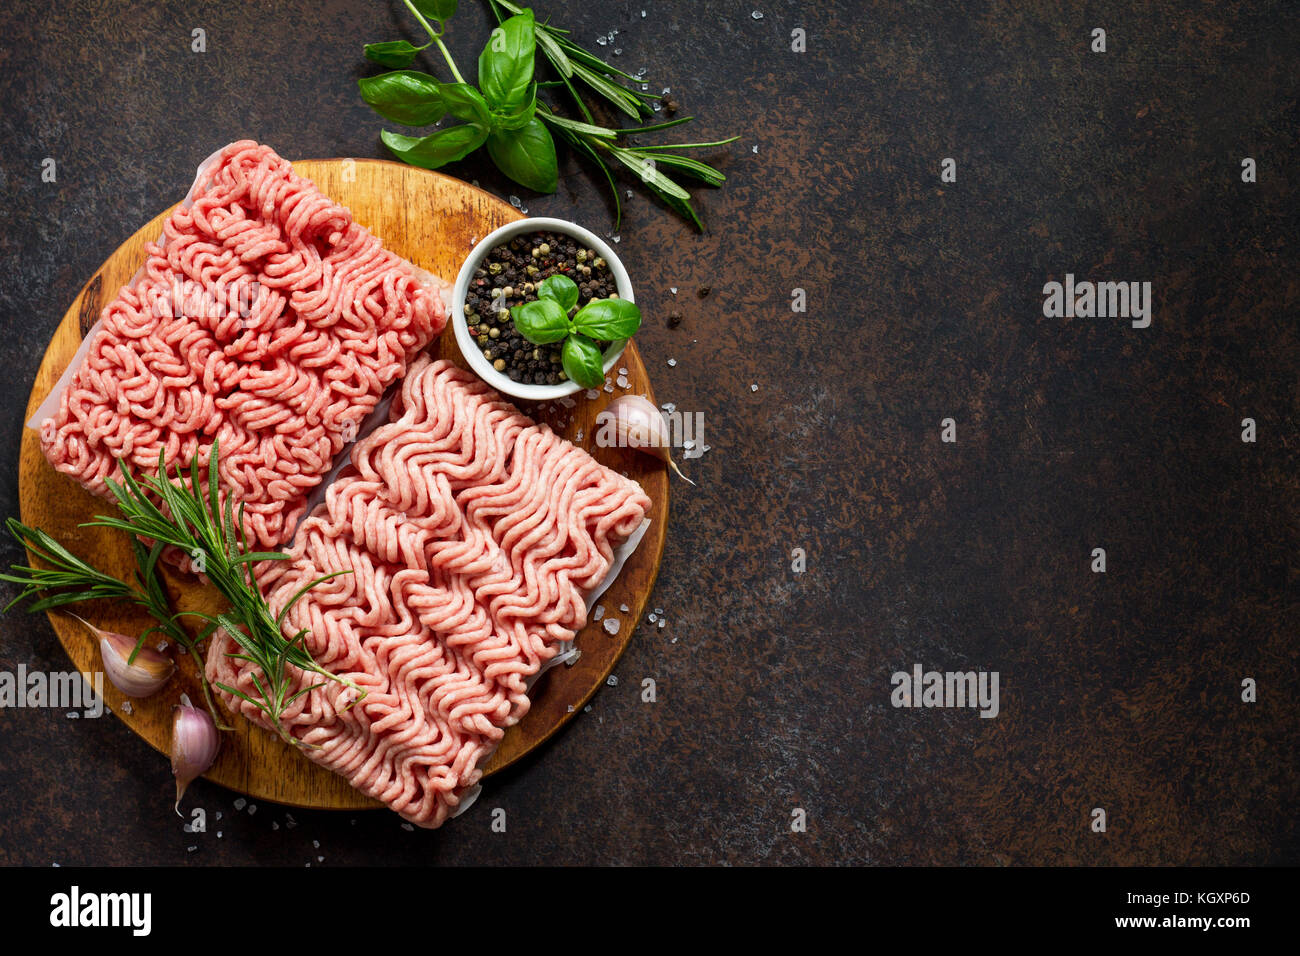 Assorted minced pork and beef with fresh leaves of rosemary and basil. Copy space. - Stock Image